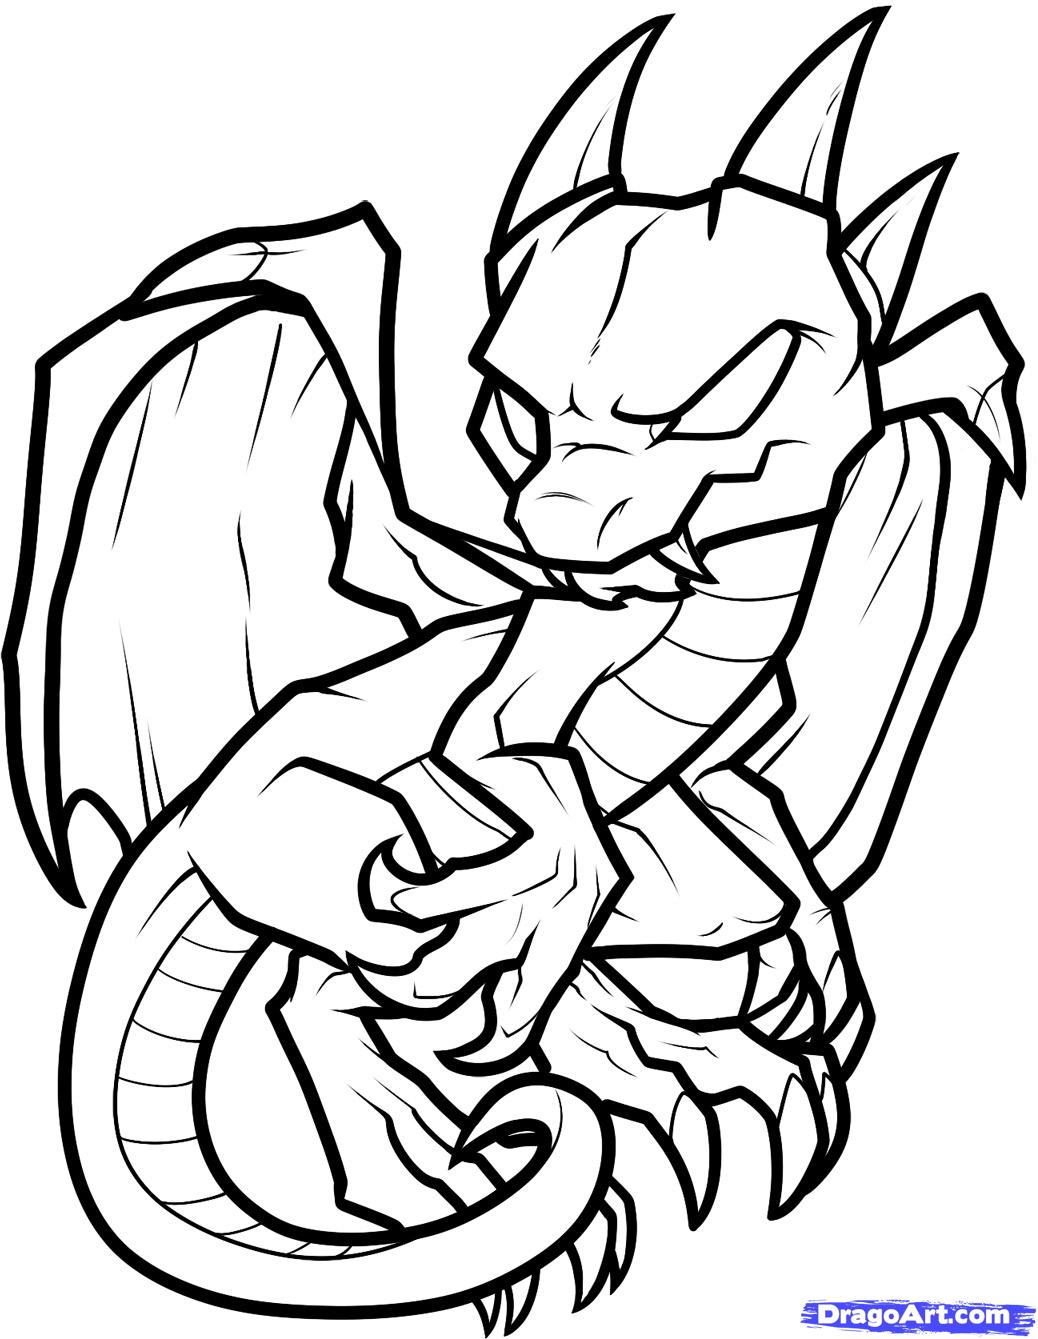 free coloring pages of dragons baby dragon coloring pages to download and print for free free pages of coloring dragons